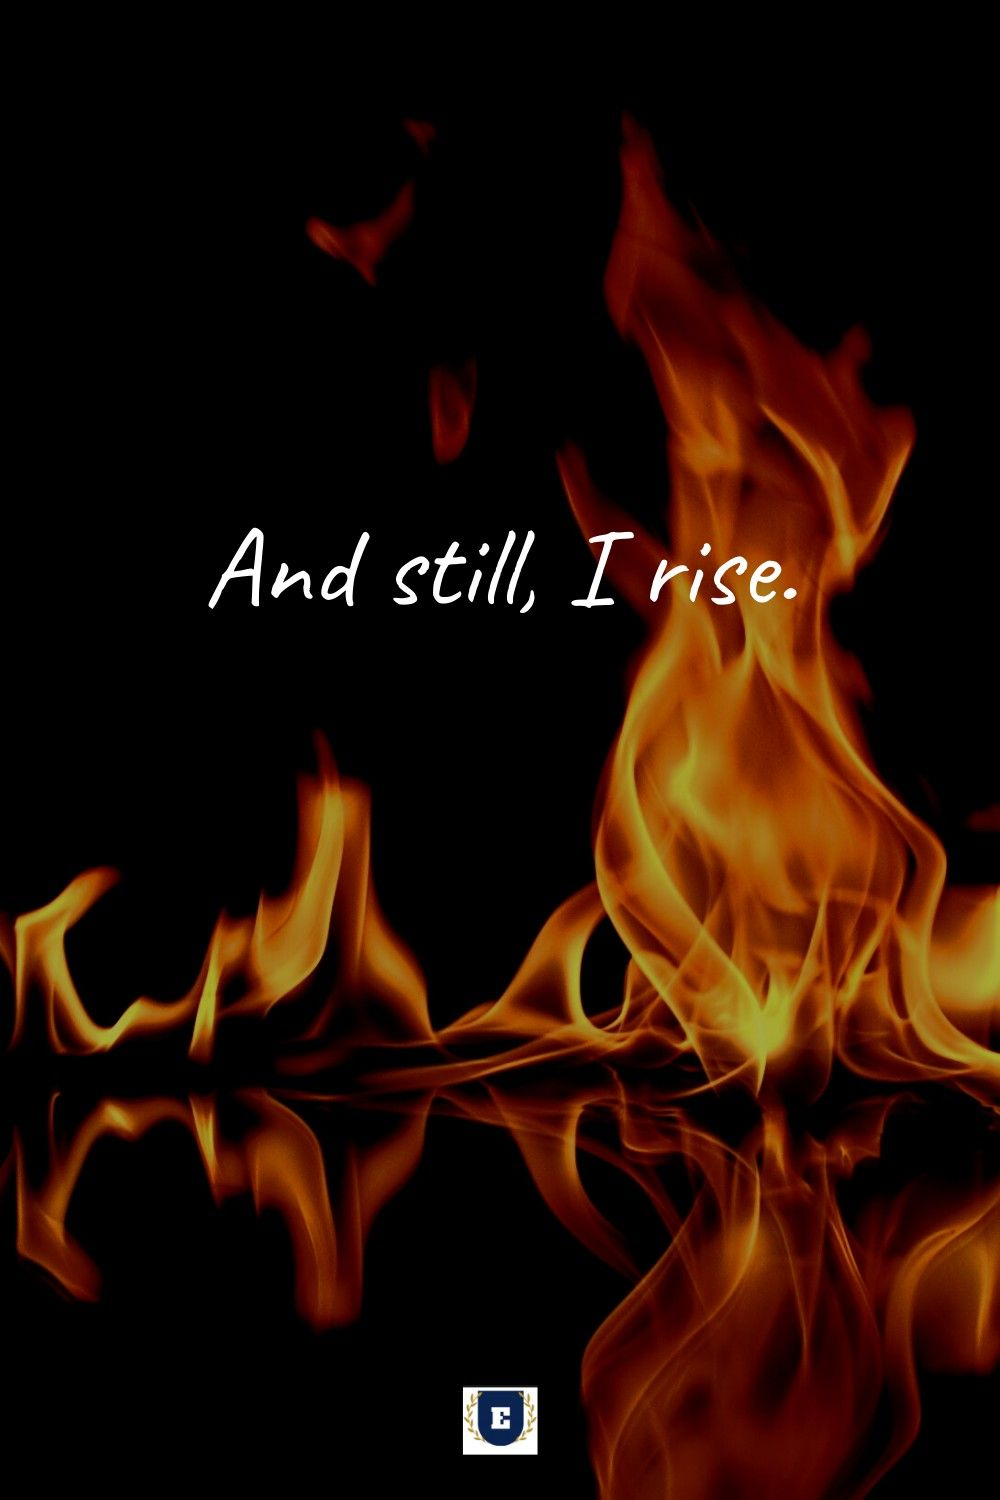 #inspiration #motivation #fire #nevergiveup #edeocy #quotes